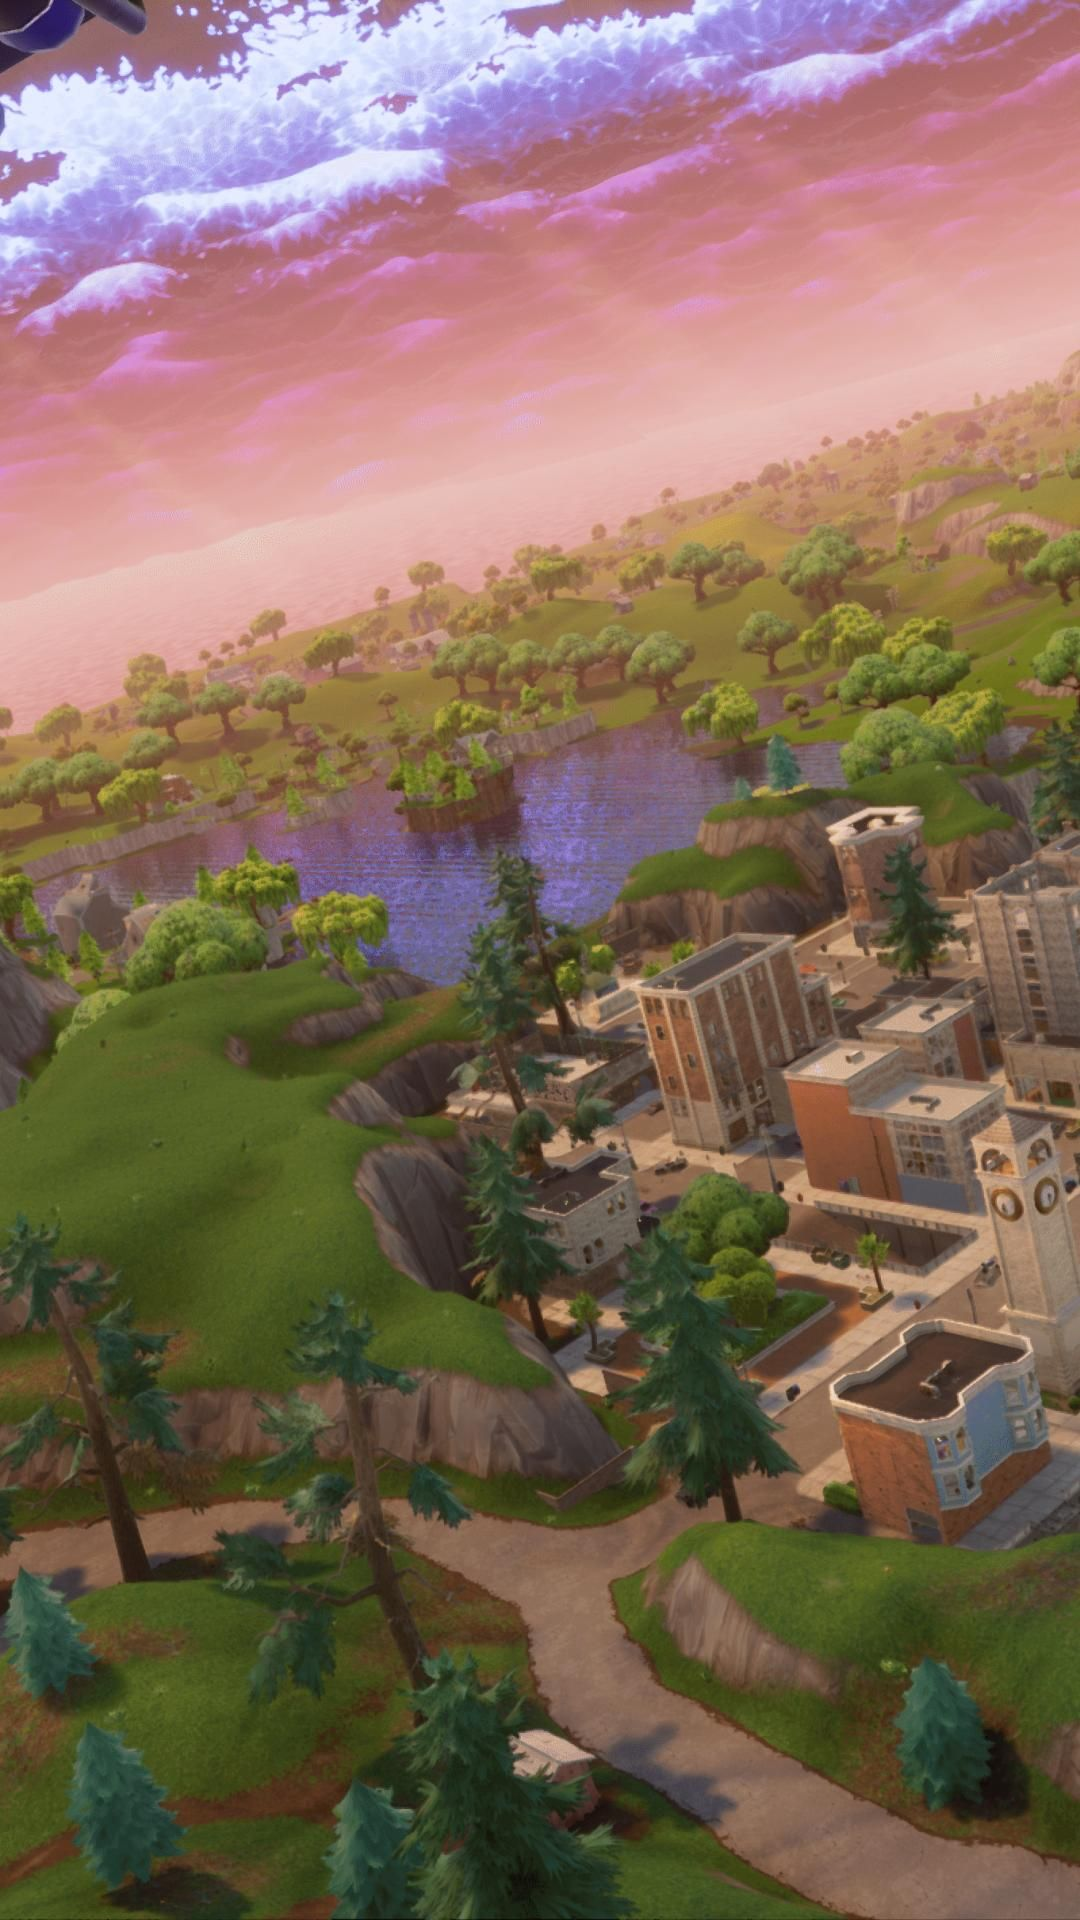 Hd Wallpaper 79 Mit Bildern Fortnite Bilder Bilder Videospiele